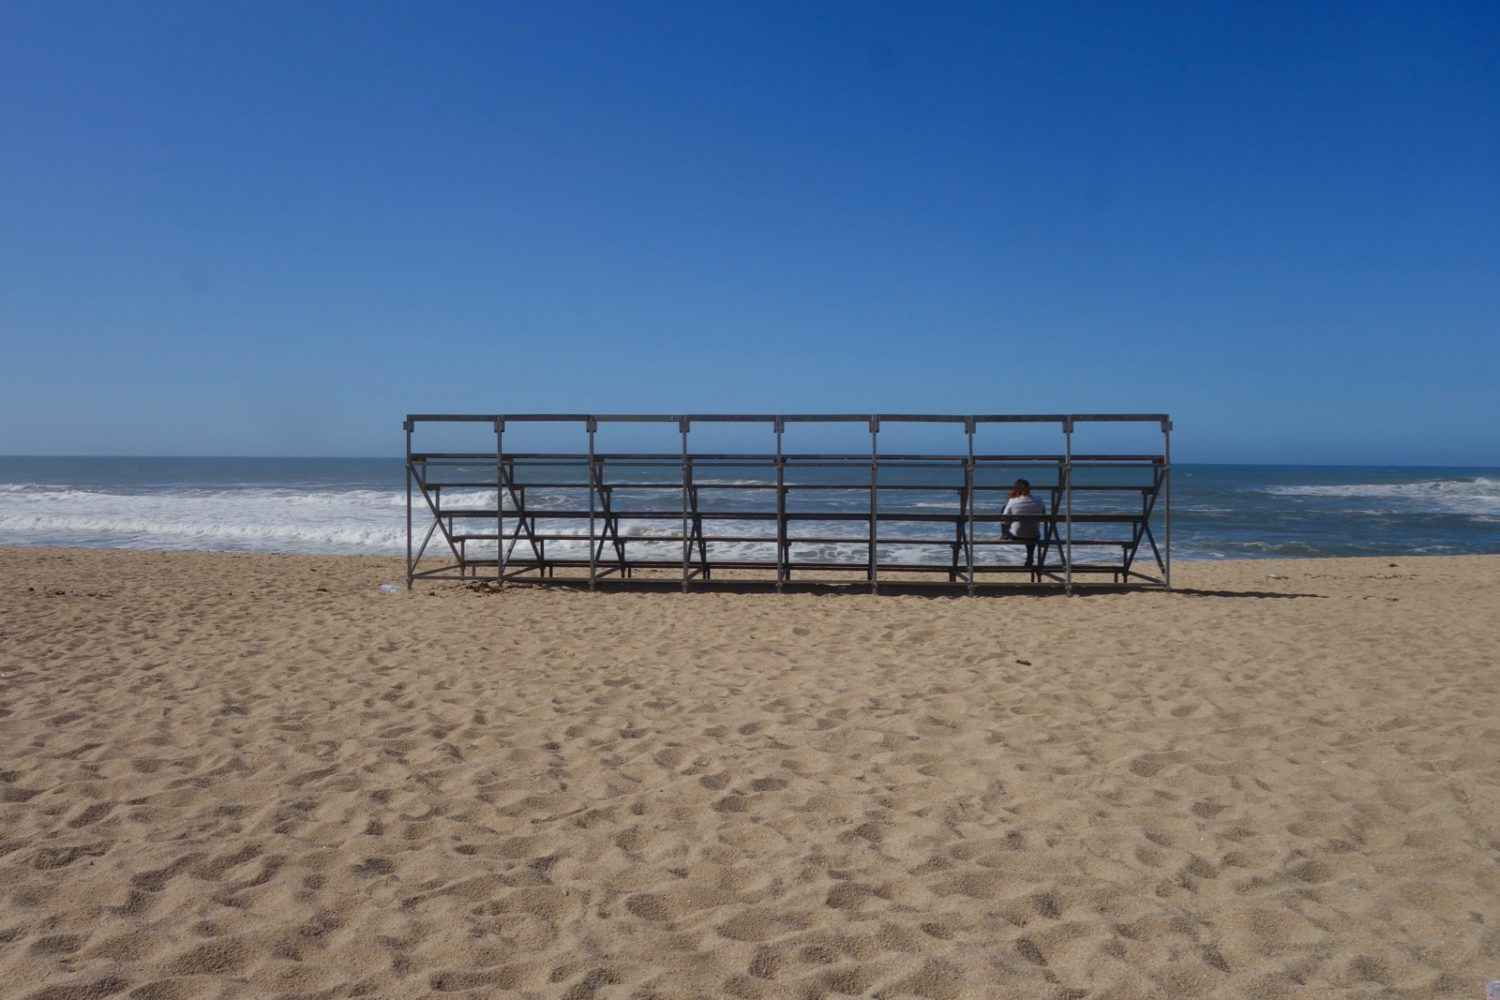 Bleachers on beach in Portugal